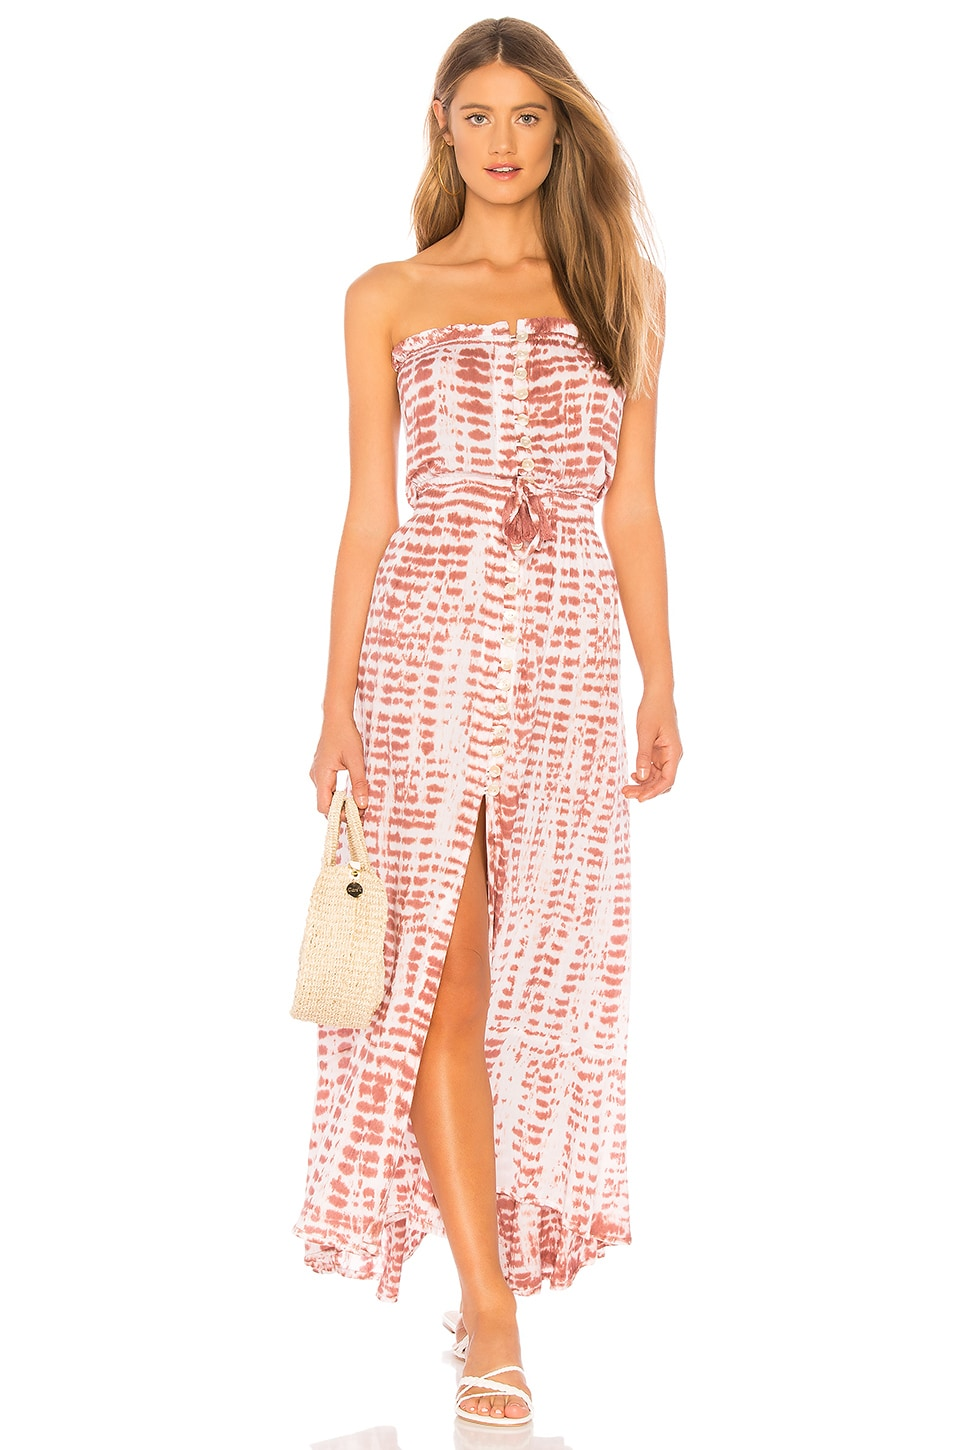 Ryden Dress             Tiare Hawaii                                                                                                       CA$ 183.49 1